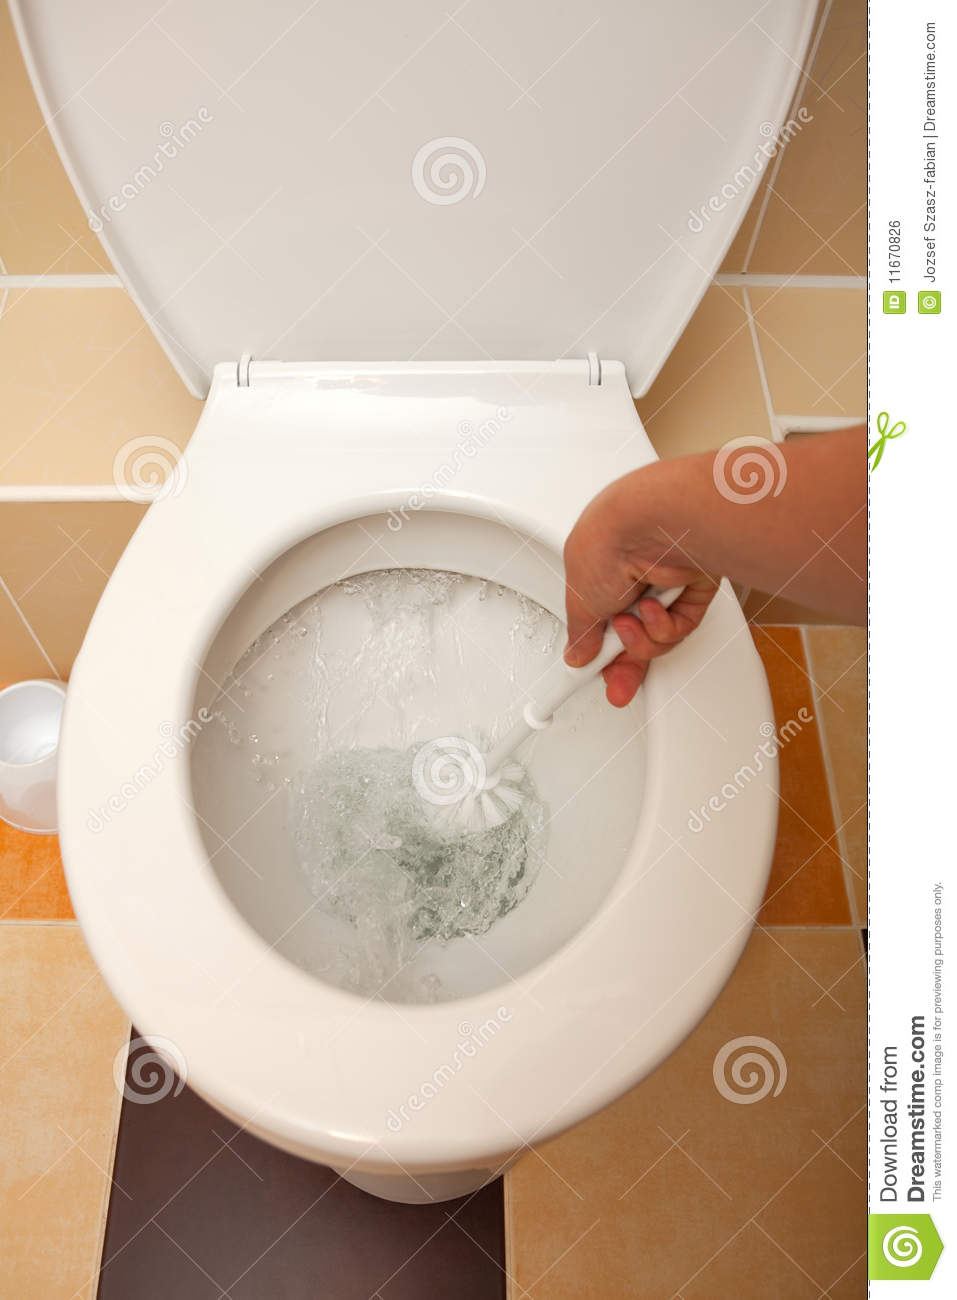 Hand Washing The Toilet Stock Photo Image Of Water Seat